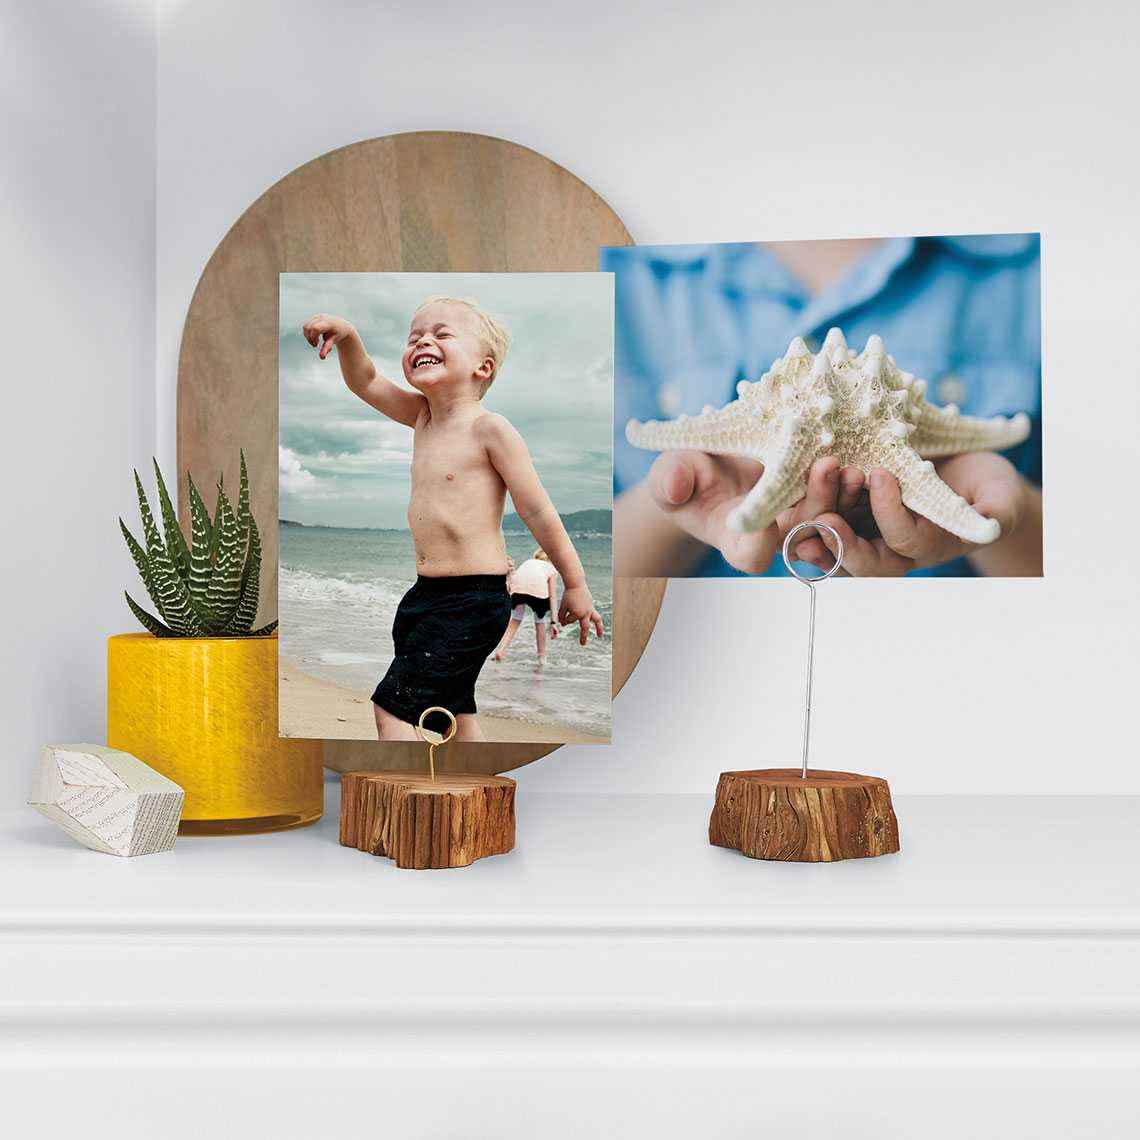 FREE Snapfish: 10-Count 4x6-inch Photo Prints for FREE